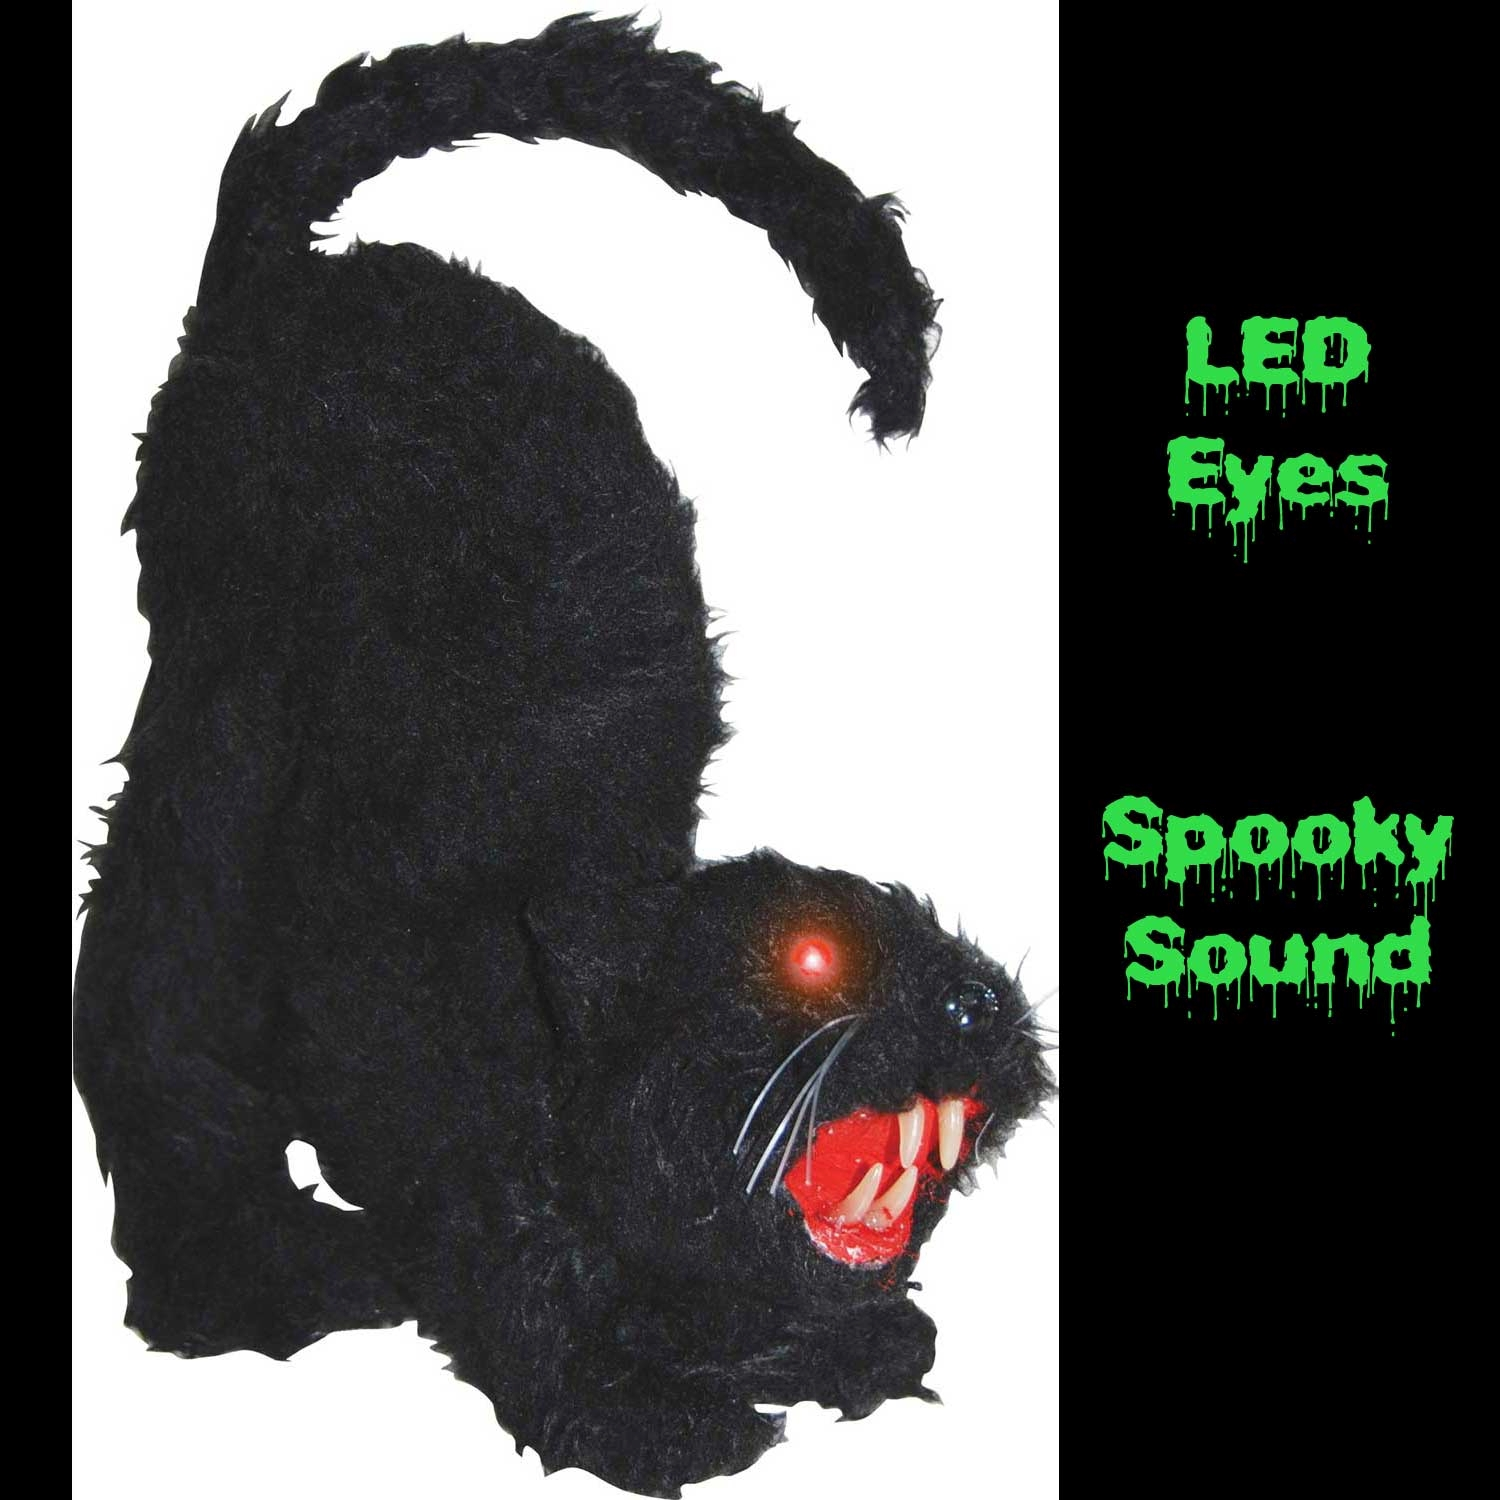 spooky-black-cat-led-eyes-sound-haunted-house-prop-decoration